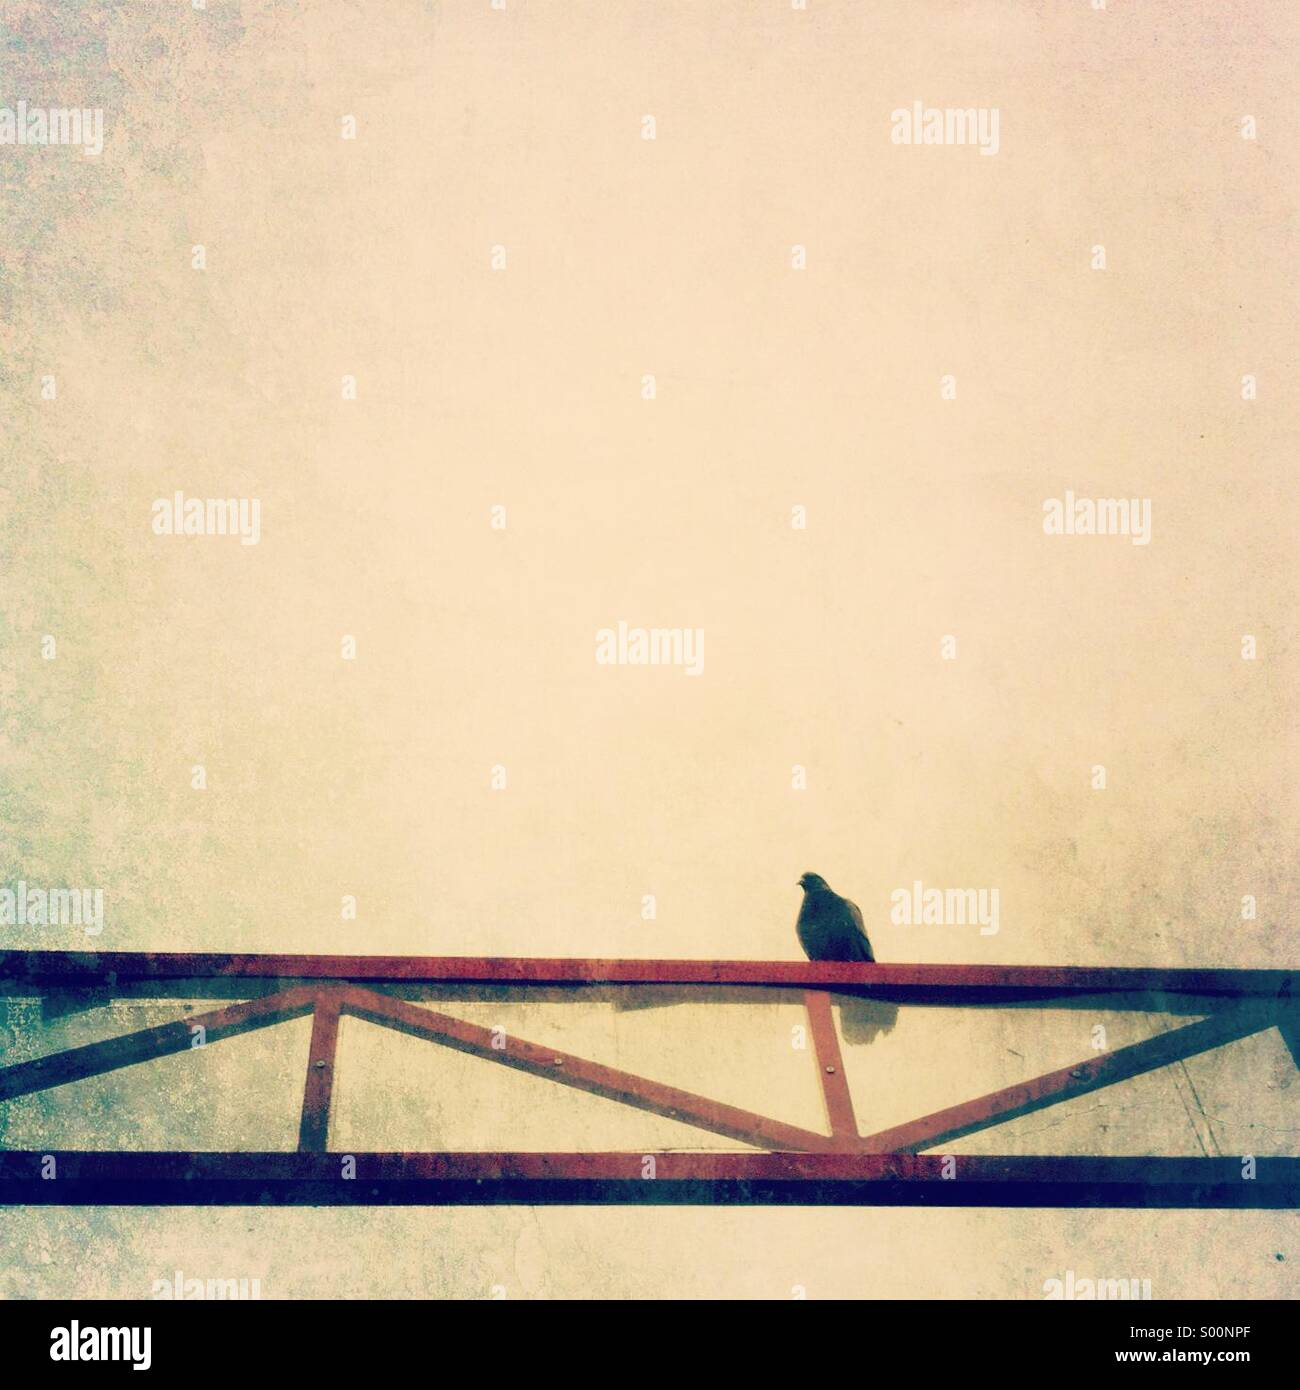 Lone pigeon perches on top of a red metal truss. - Stock Image